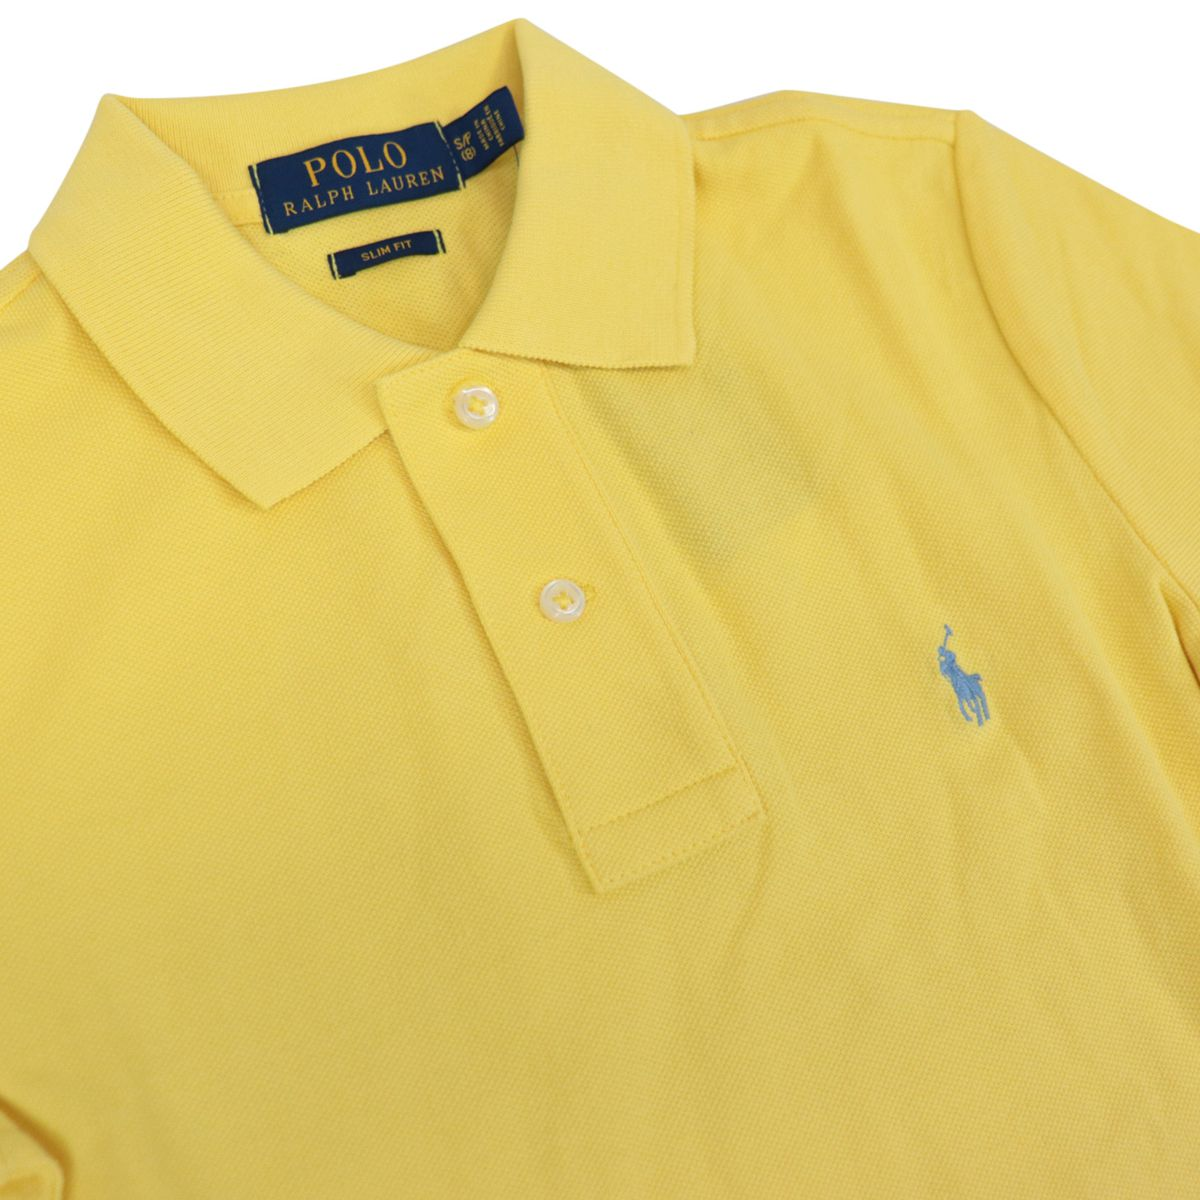 Custom fit polo shirt with contrasting logo embroidery Yellow Polo Ralph Lauren